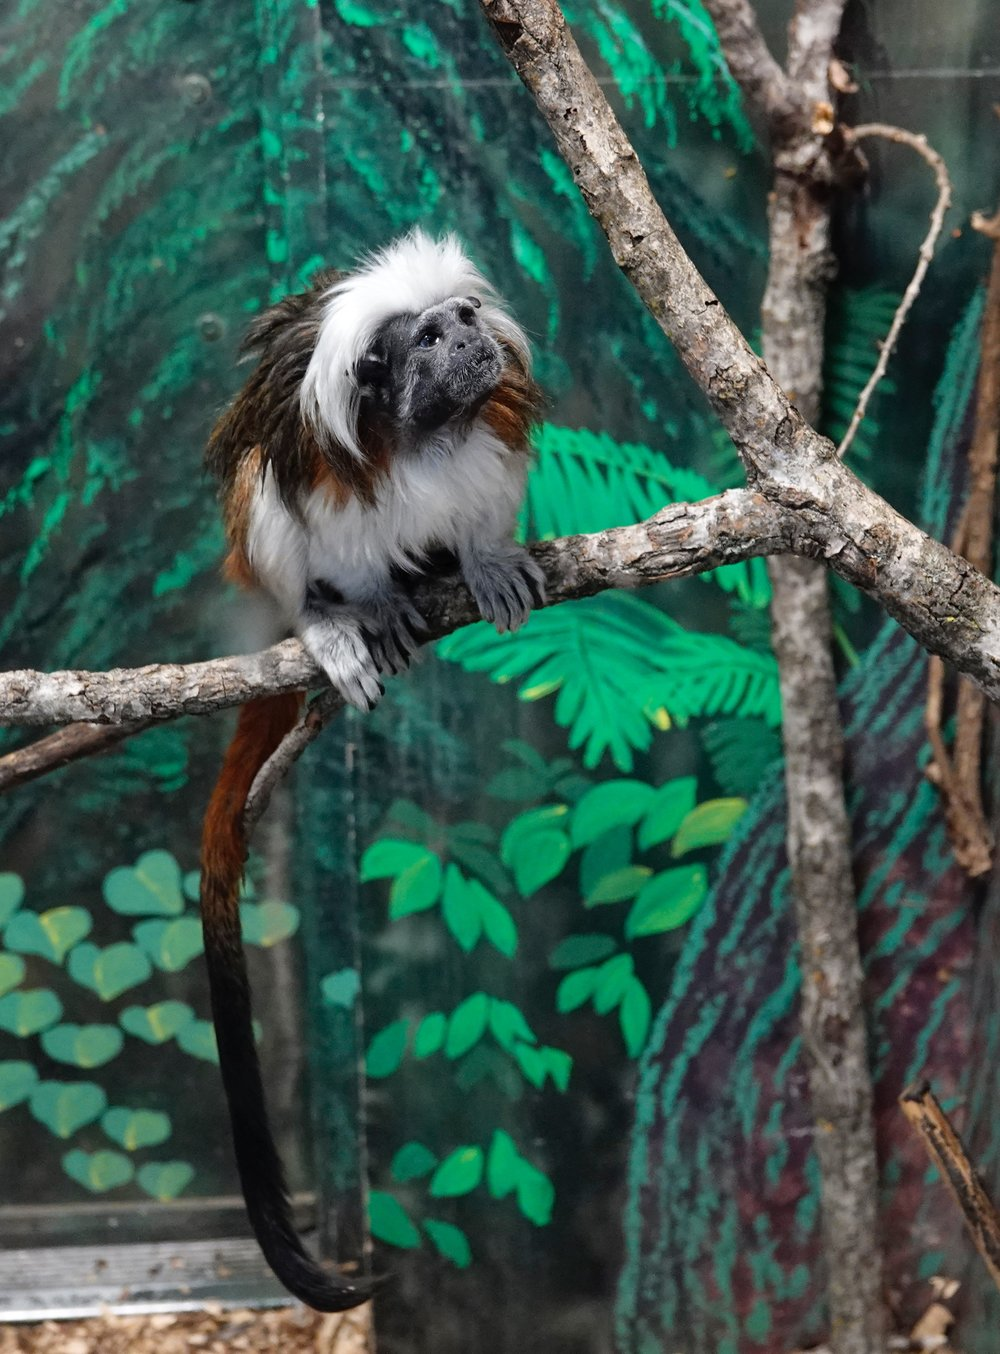 There aren't many cotton-top tamarins left in their native home in Colombia. This one is at the Lake Superior Zoo.